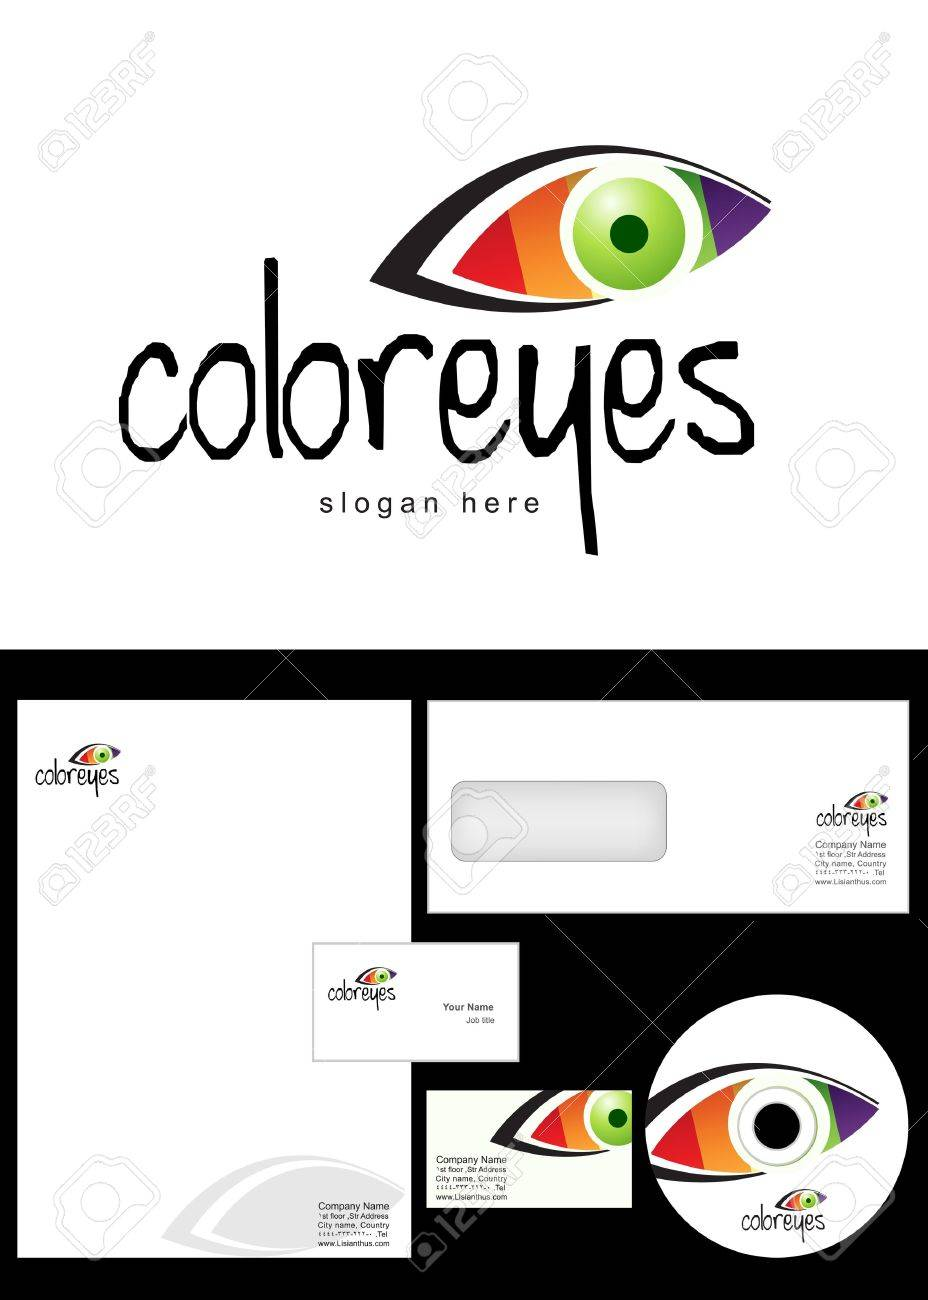 color eyes Logo Design and corporate identity package including logo, letterhead, business card, envelope and cd label. Stock Vector - 12959828